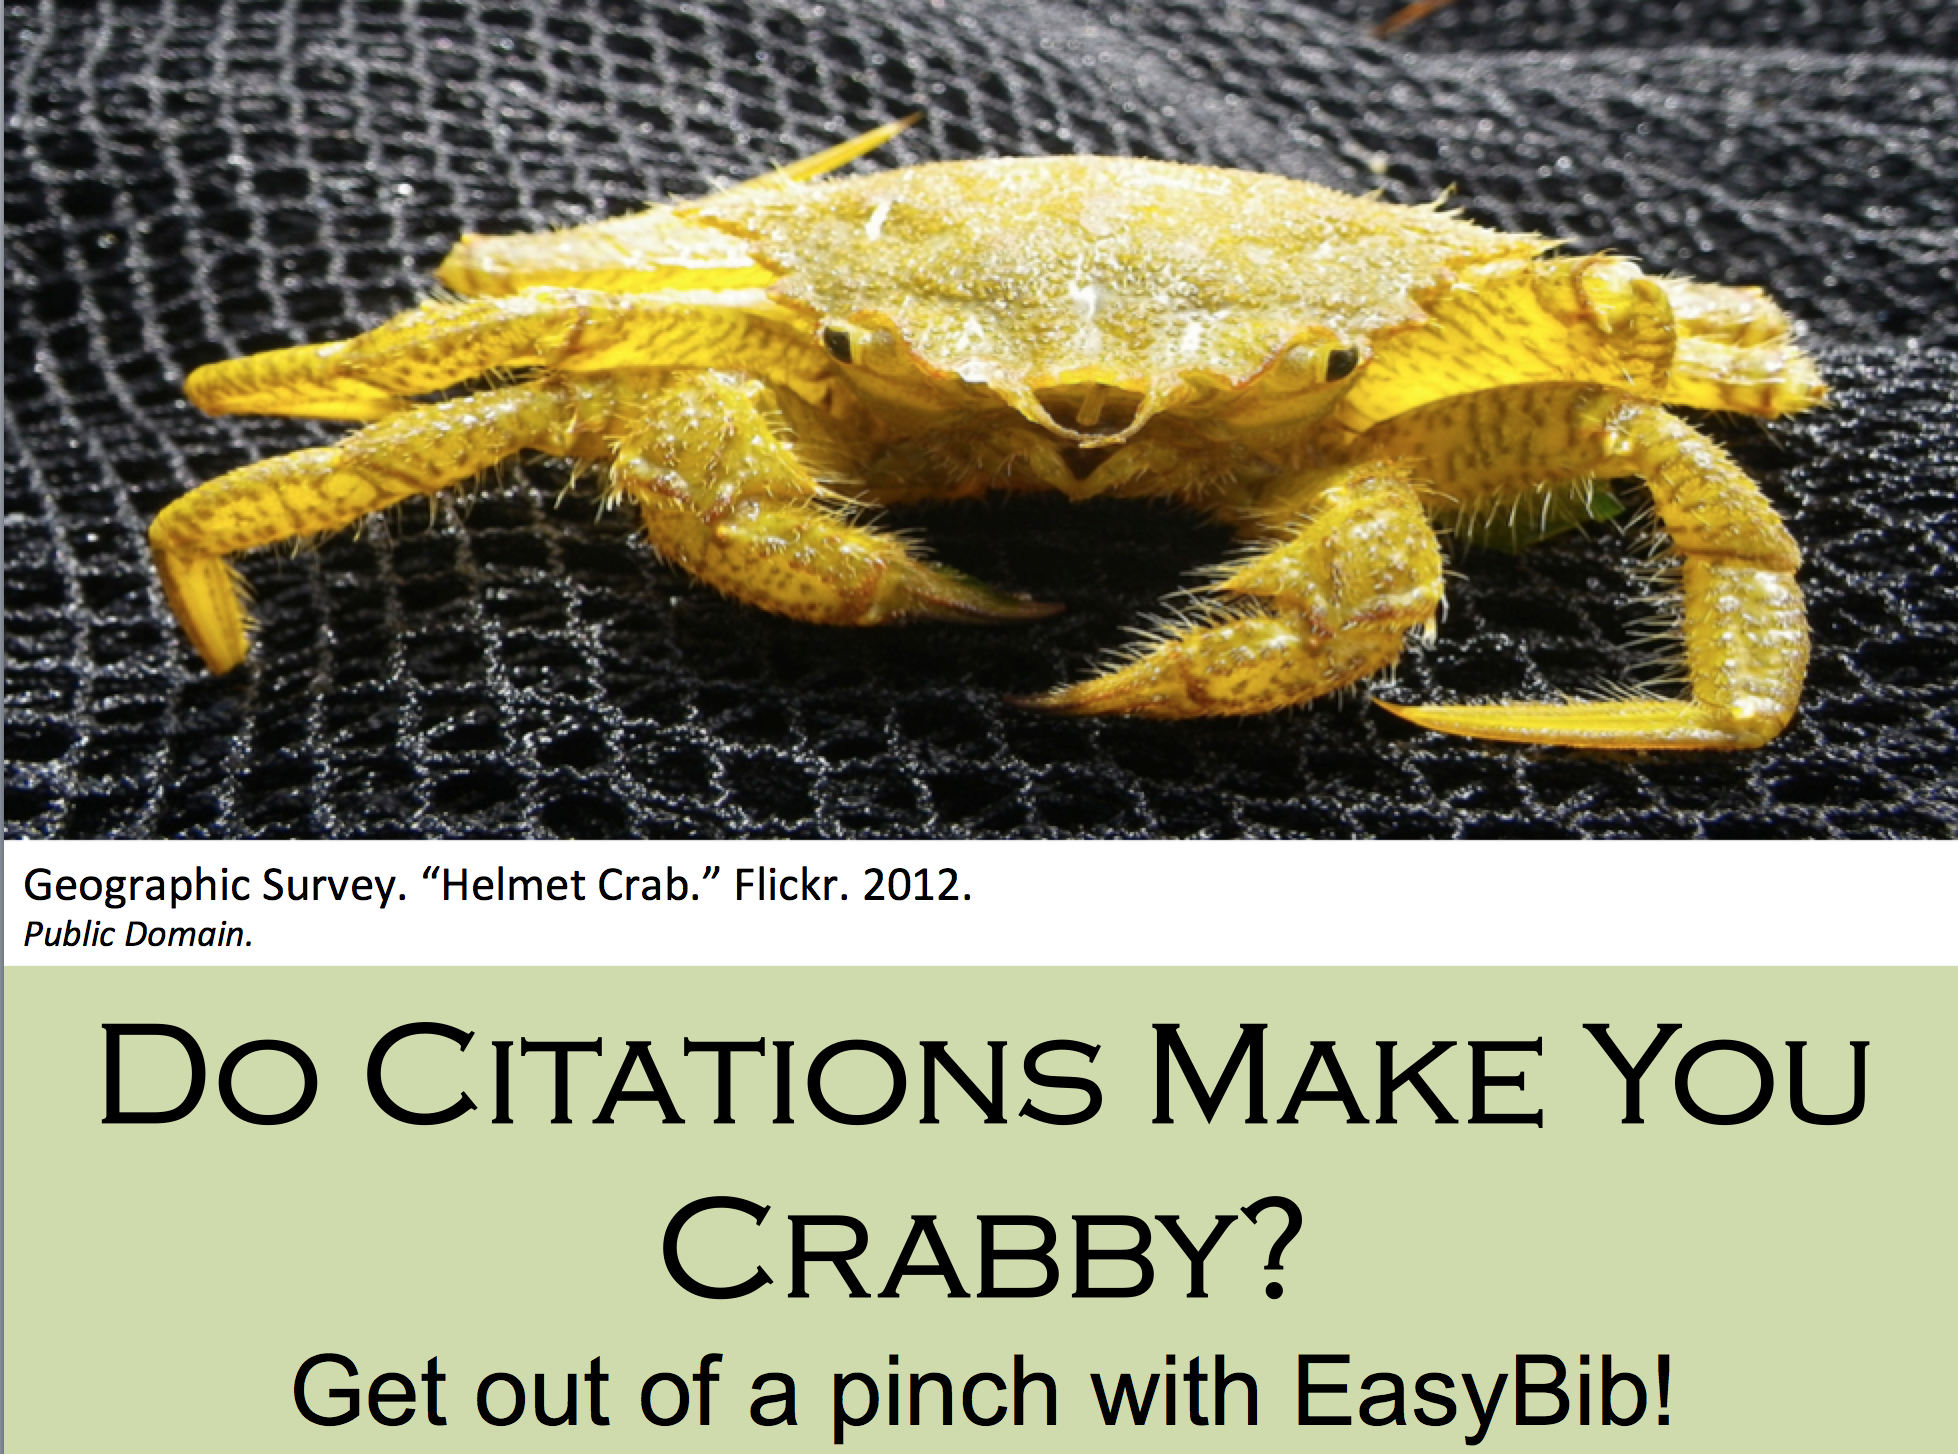 Do Citations make you crabby.  A picture of a yellow helmet crab.